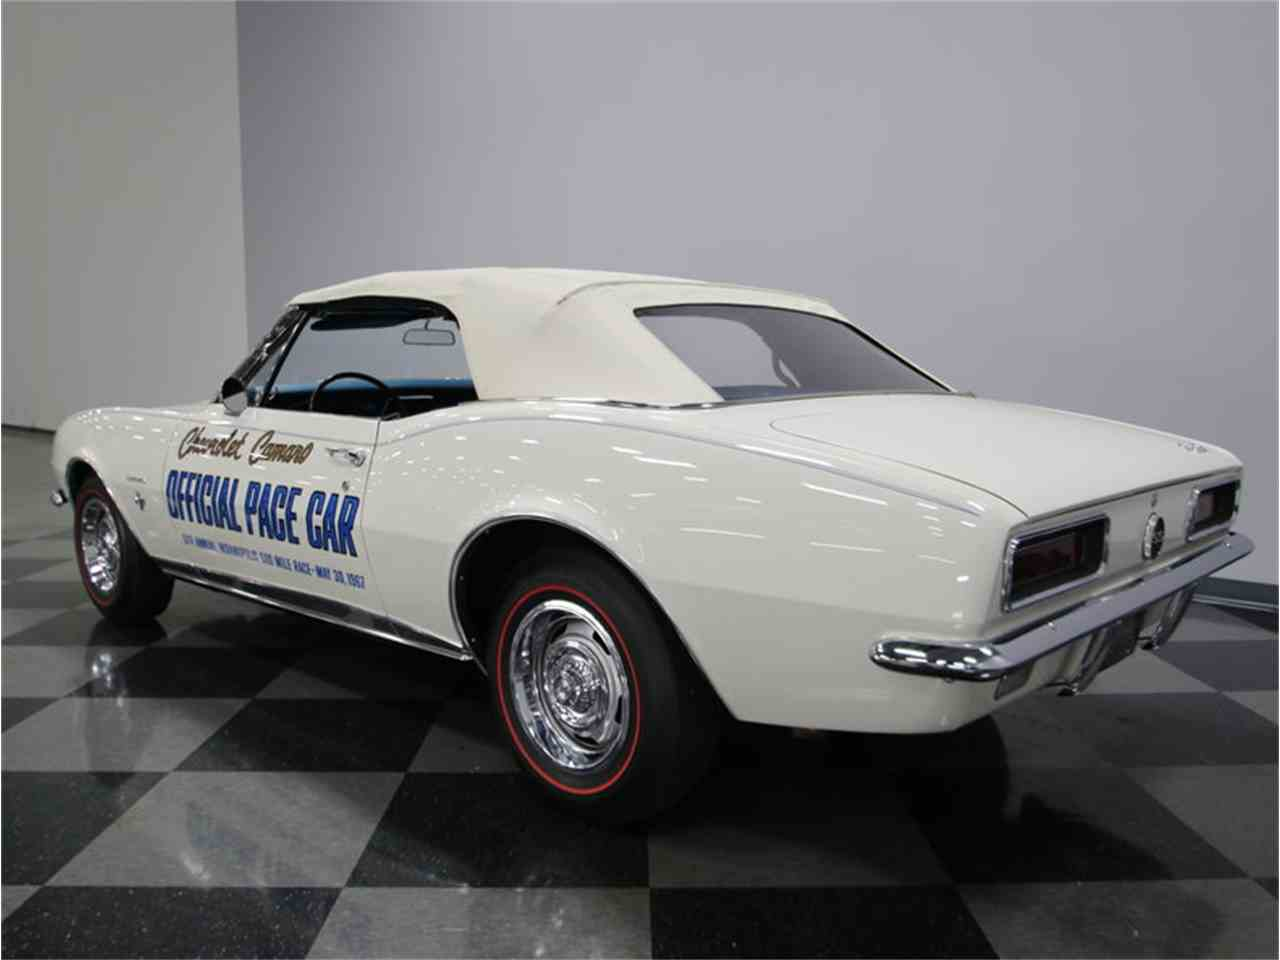 Large Picture of 1967 Camaro Indianapolis 500 Pace Car located in Tennessee - $99,995.00 Offered by Streetside Classics - Nashville - JI5M